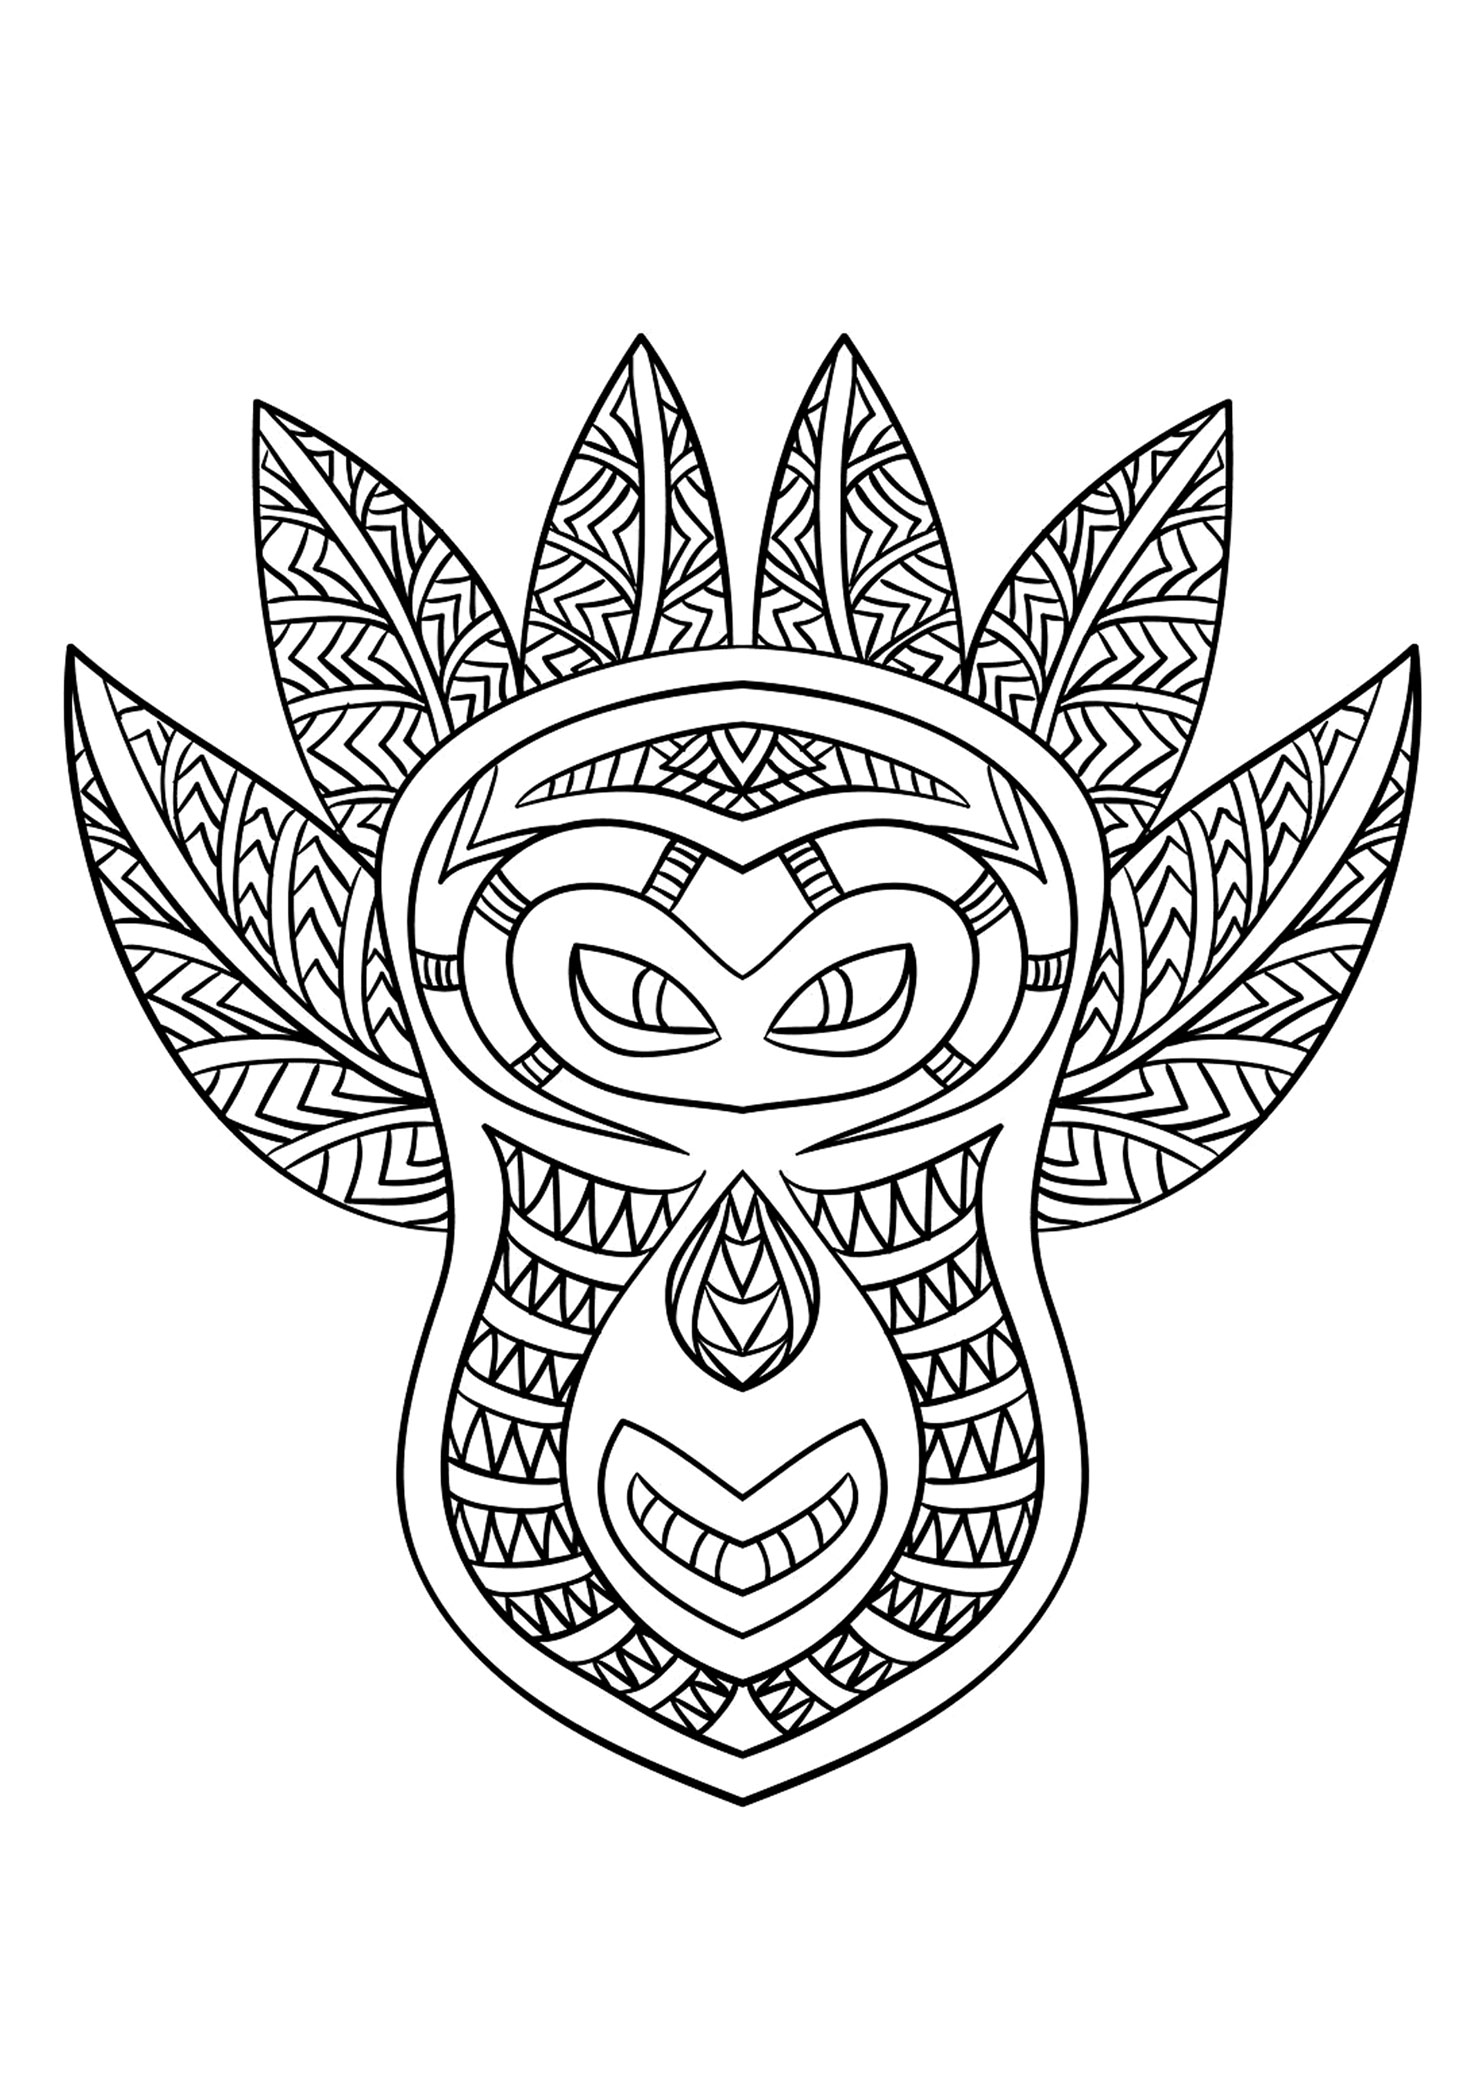 printable african masks coloring pages african mask 2 africa adult coloring pages page 2 pages masks coloring printable african